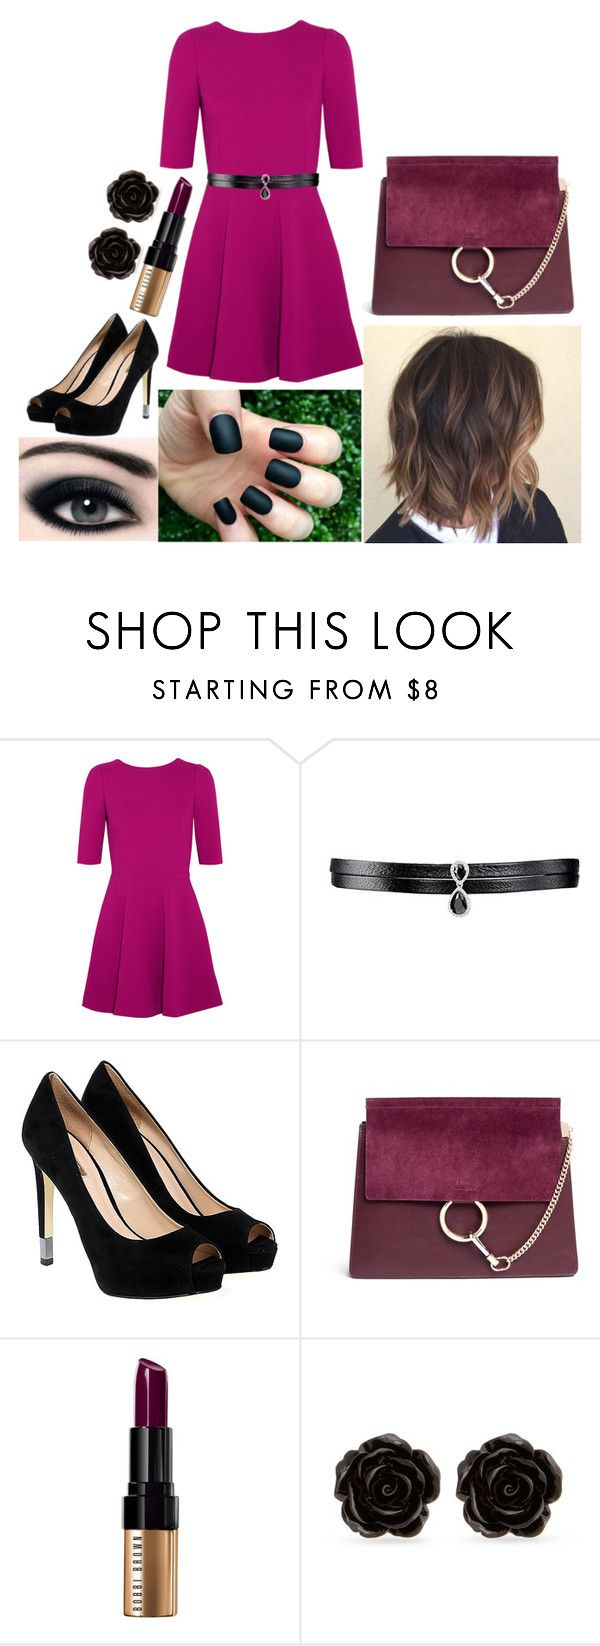 """Elizabeth: October 12, 2016"" by disneyfreaks39 ❤ liked on Polyvore featuring Dolce&Gabbana, Fallon, GUESS, Chloé, Bobbi Brown Cosmetics and Erica Lyons"